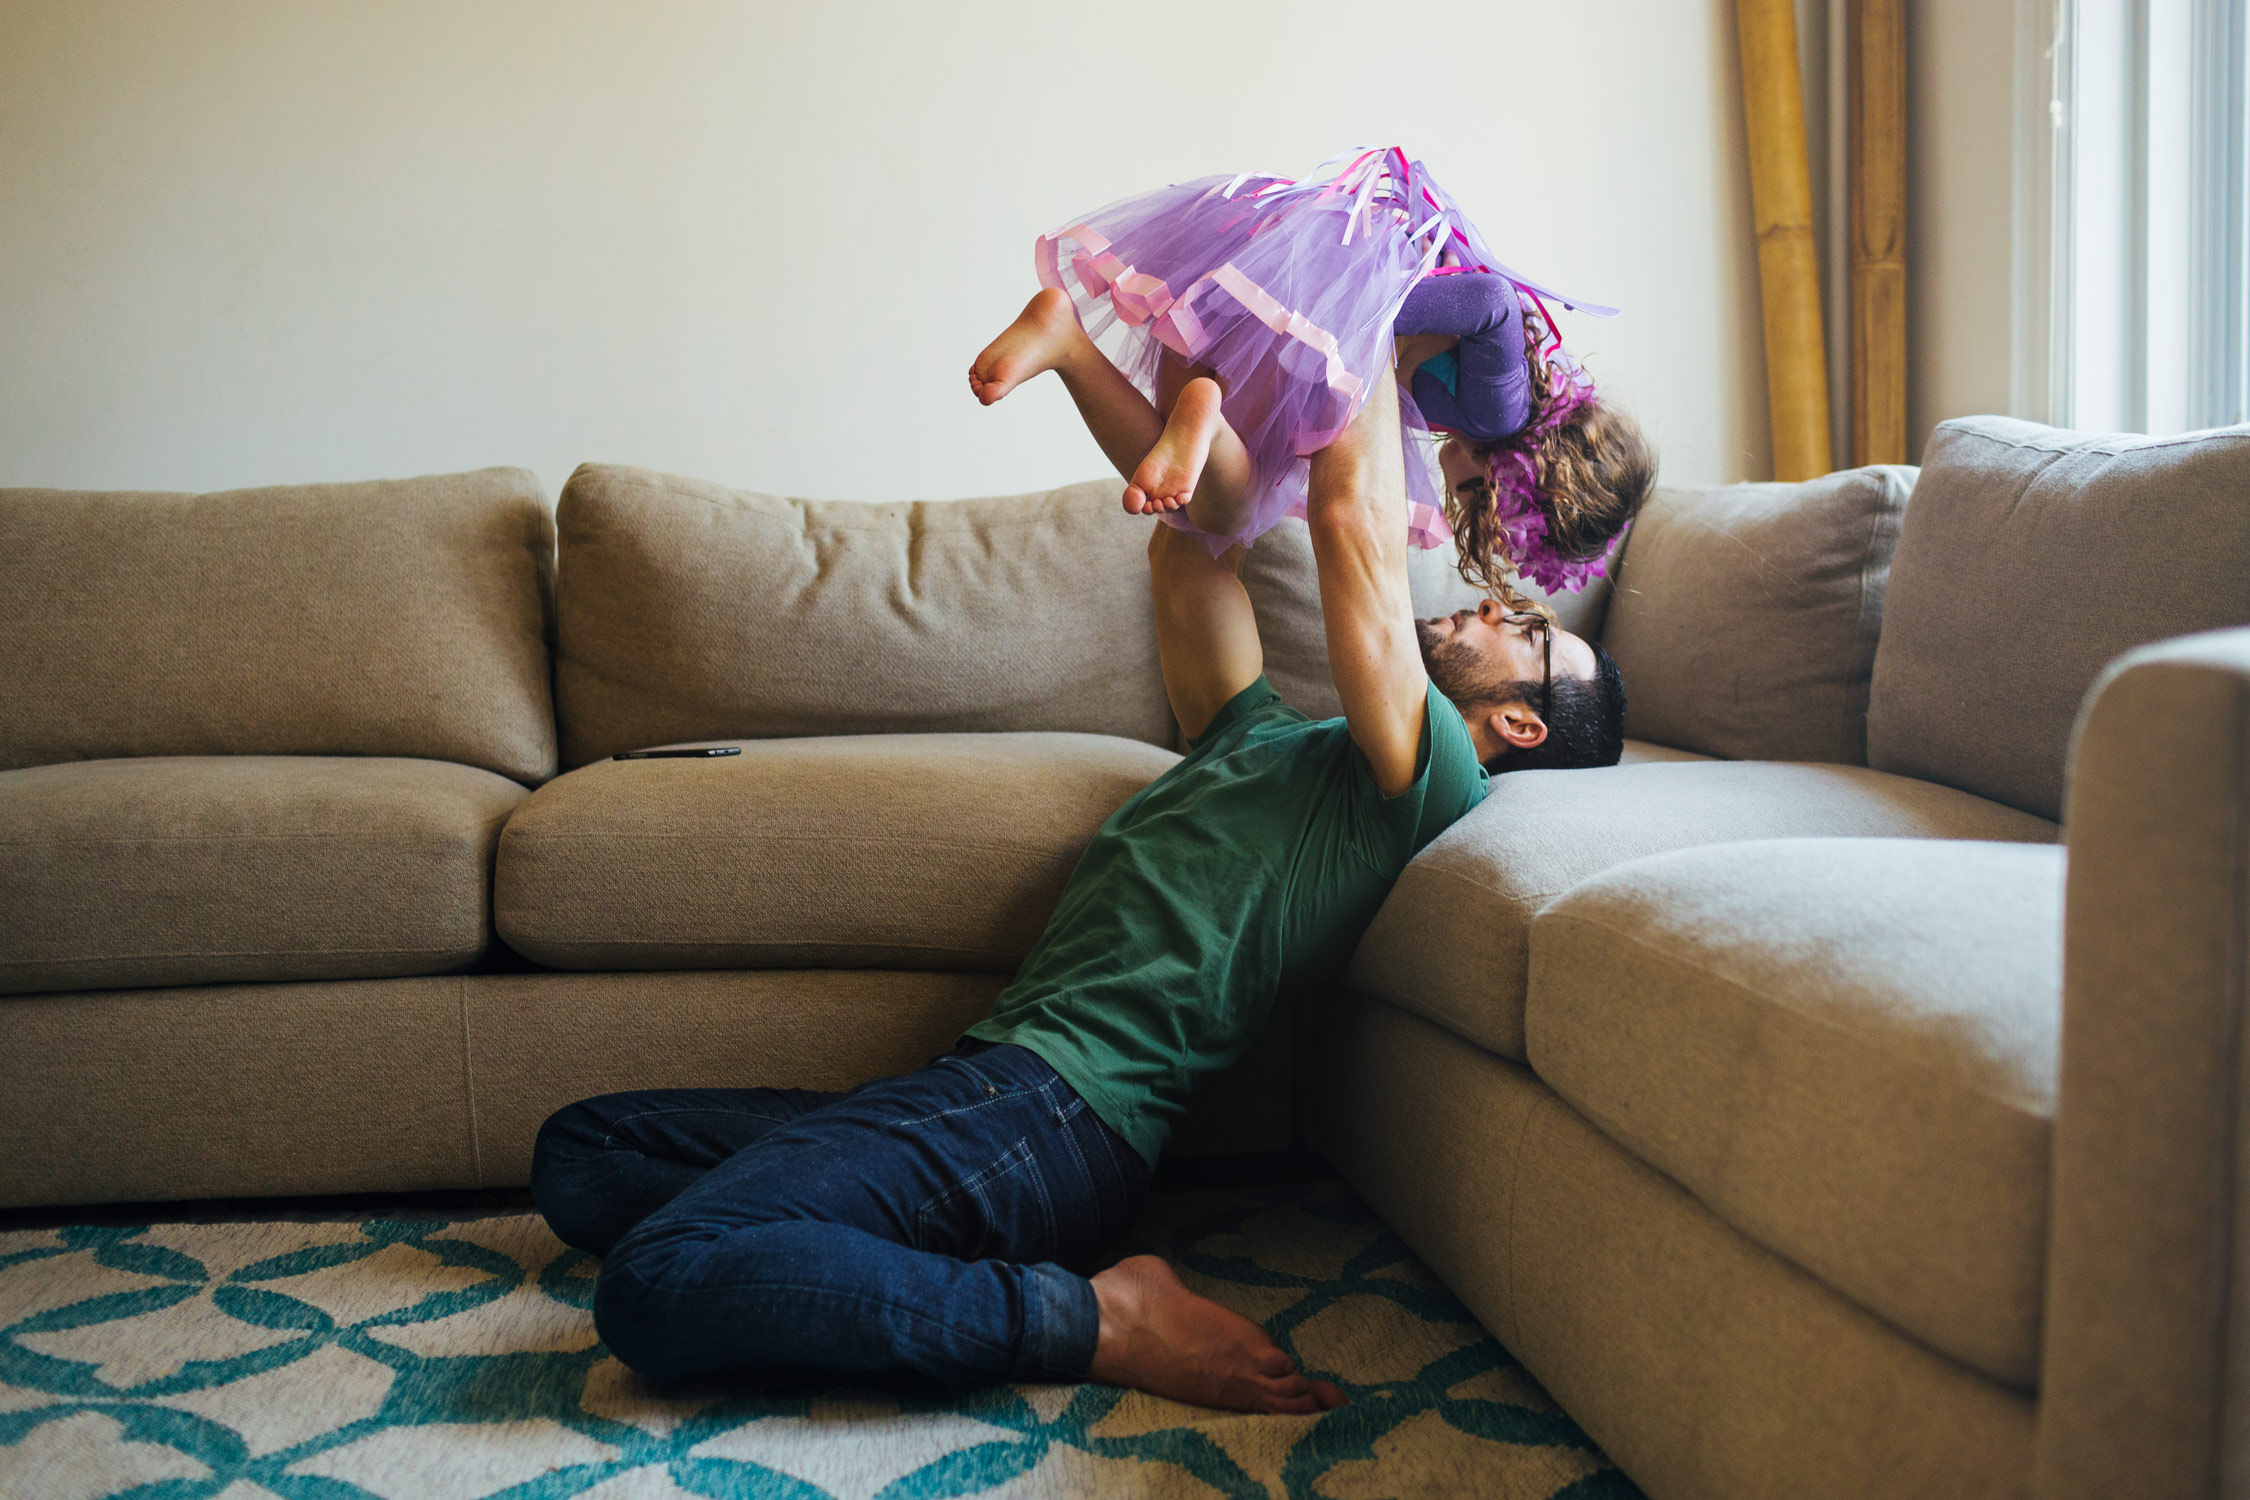 father holding up daughter near couch, washington dc commercial photography